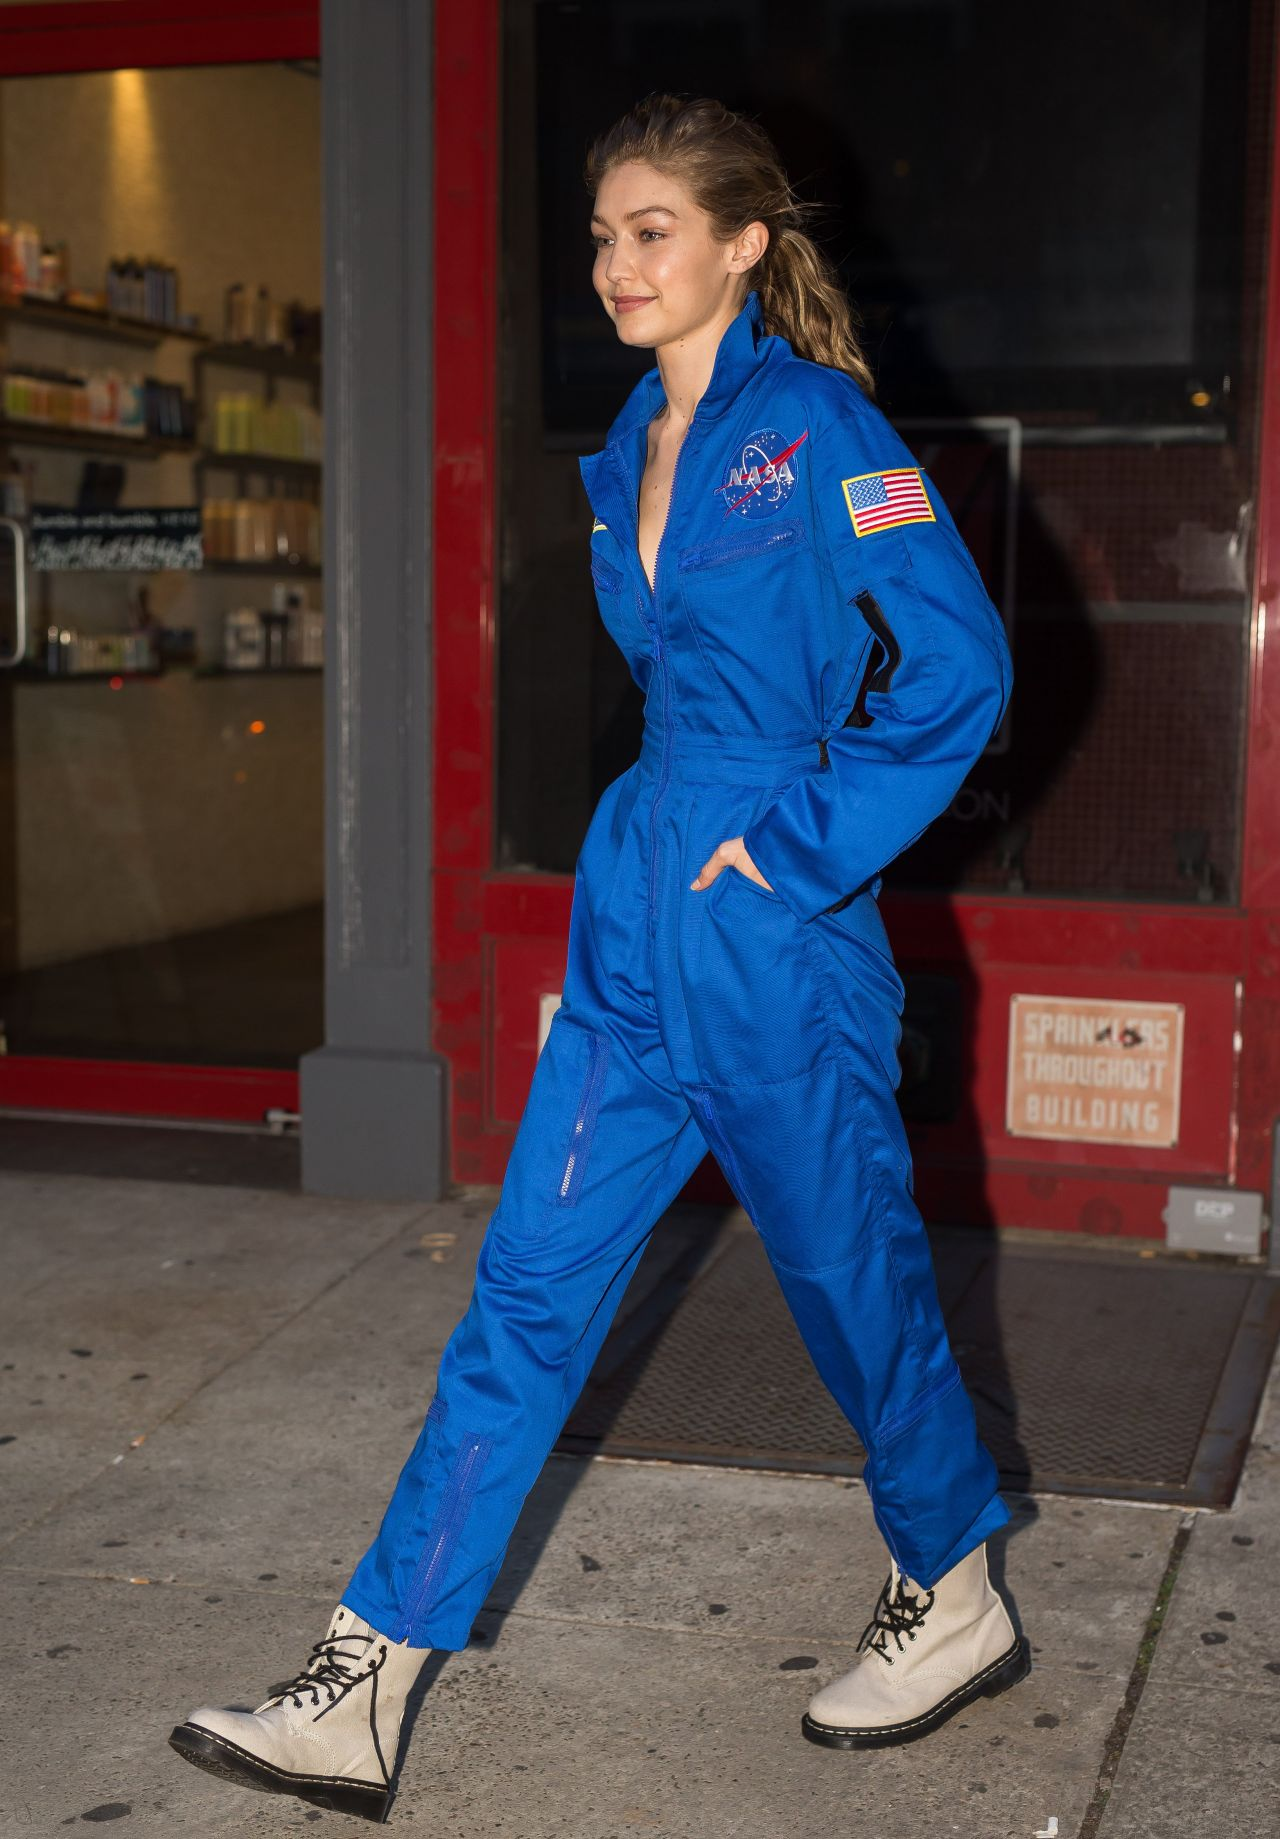 nasa jumpsuit blue - photo #18